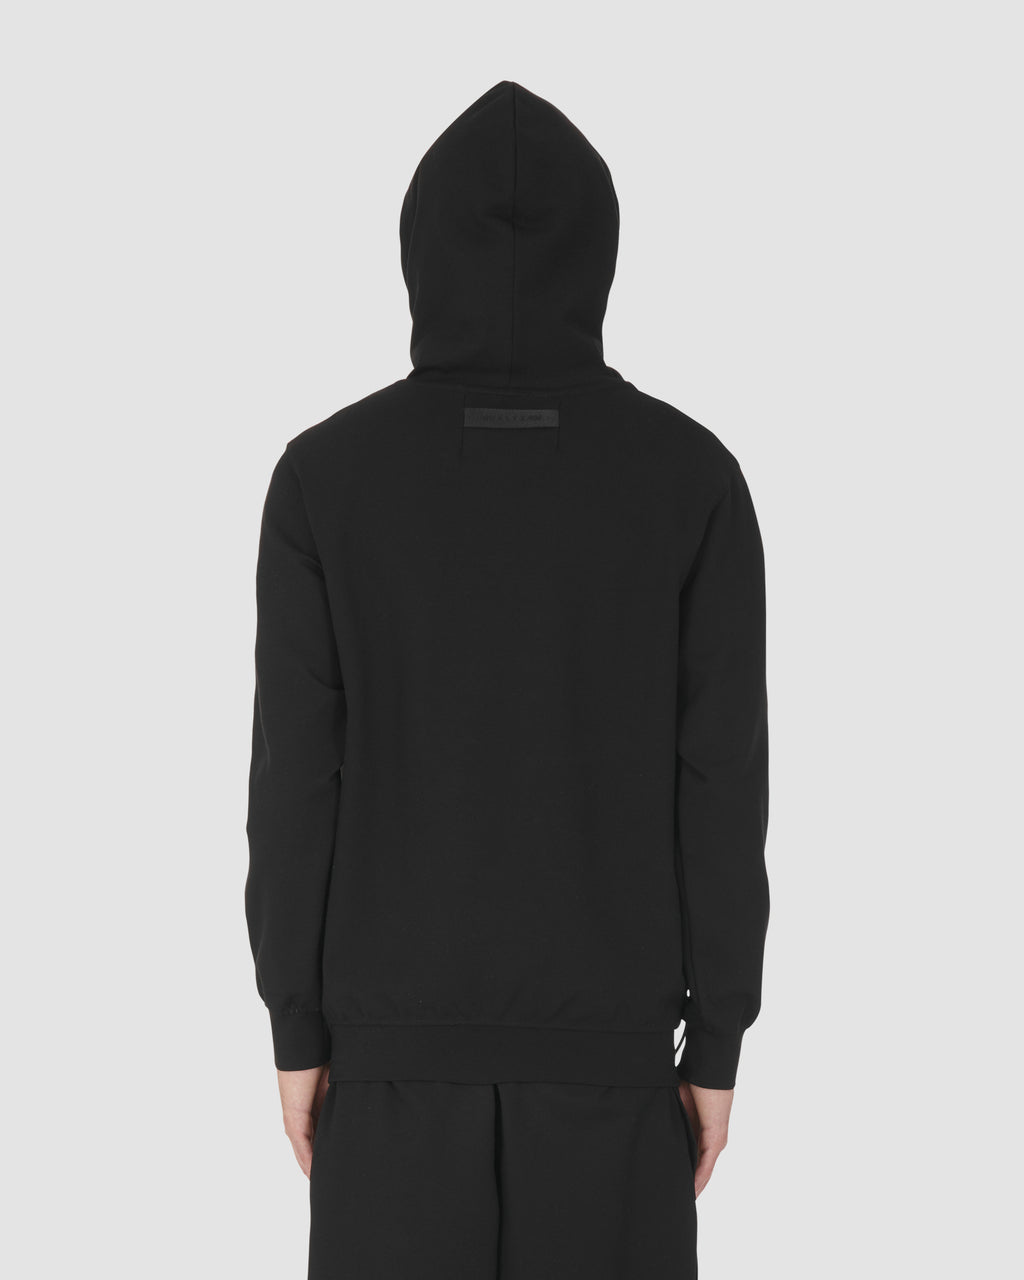 1017 ALYX 9SM | BLACK HOODIE | Sweatshirt | Black, Google Shopping, Man, MEN, S20, S20 Drop II, Sweatshirts